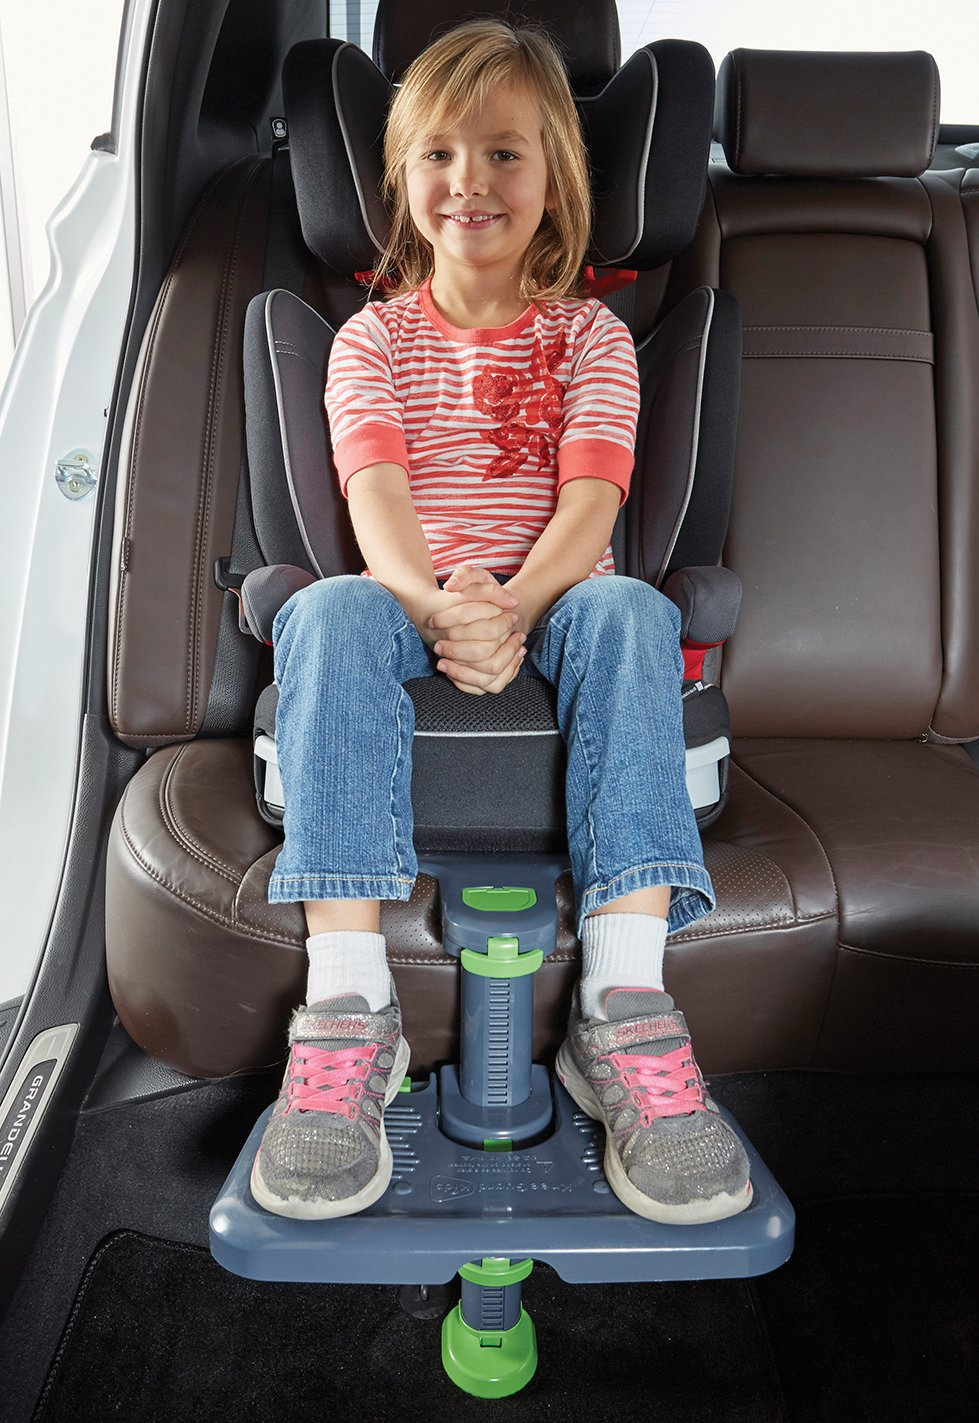 Amazon.com : NapUp Child Car Seat Head Support - A Comfortable Safe ...